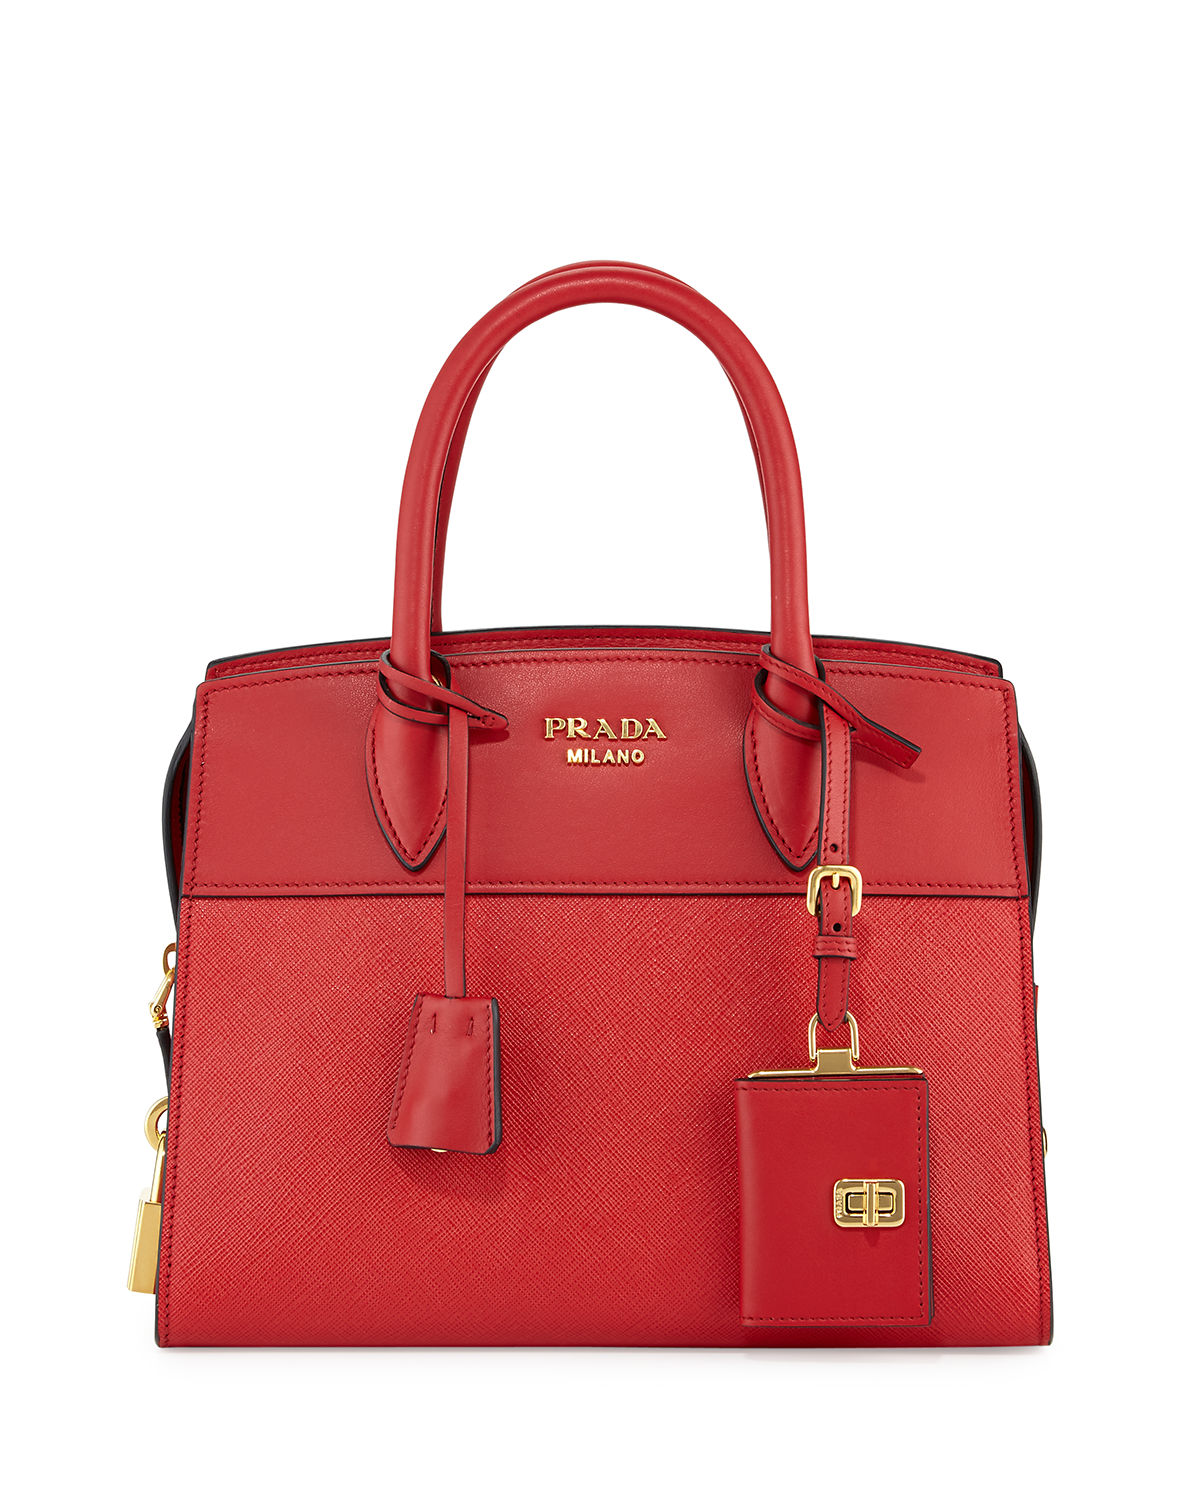 Esplanade Small City Satchel Bag